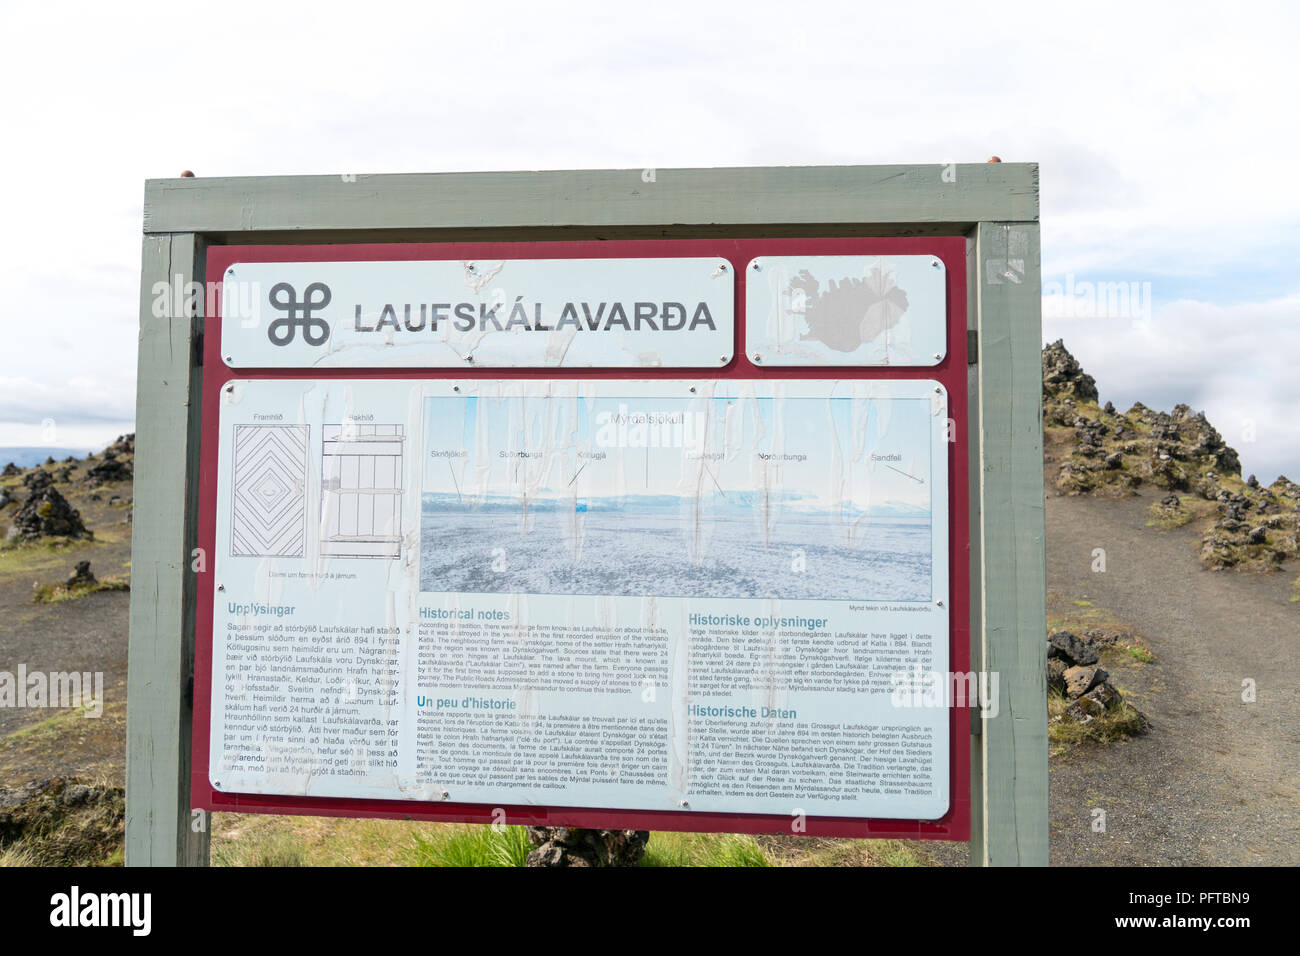 The tourist sign at Laufskalavarda, Iceland, explaining the tradition of leaving stone cairns to ensure good fortune on a traveller's journey. - Stock Image